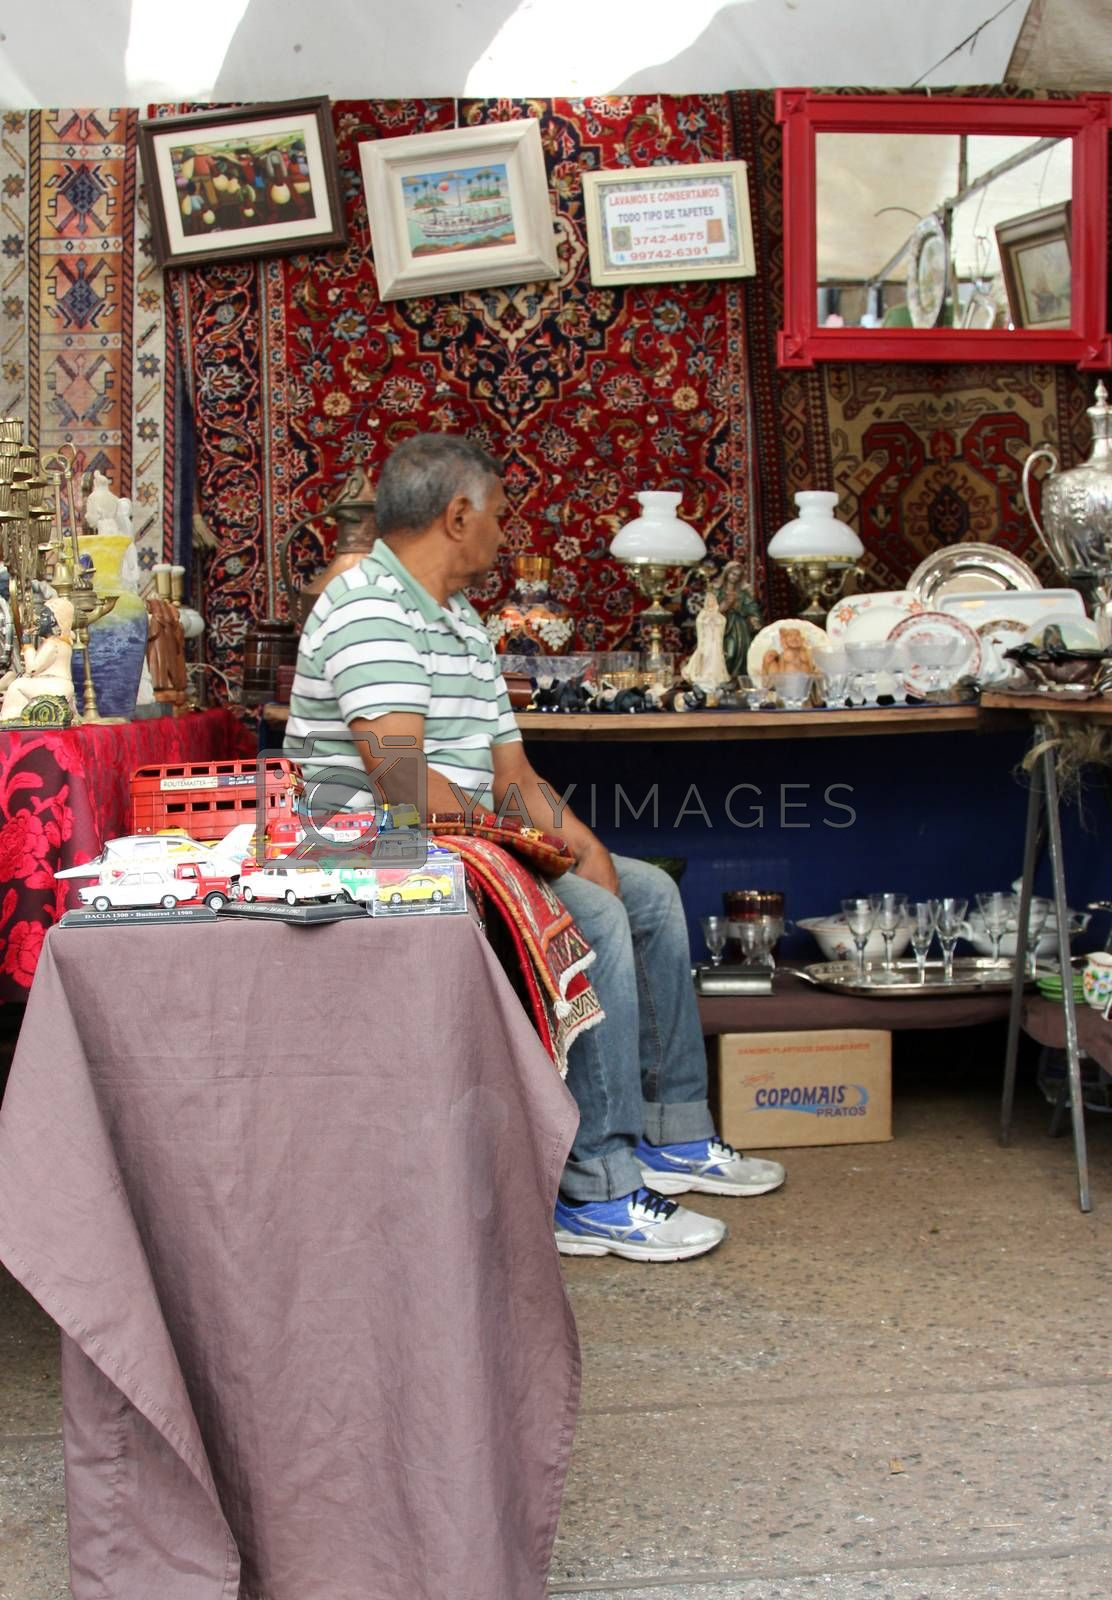 Sao Paulo, Brazil, July 18 2015: Unidentified elderly man in the traditional antique objects market that has been held all Saturdays in Benedito Calixto square in Sao Paulo Brazil.